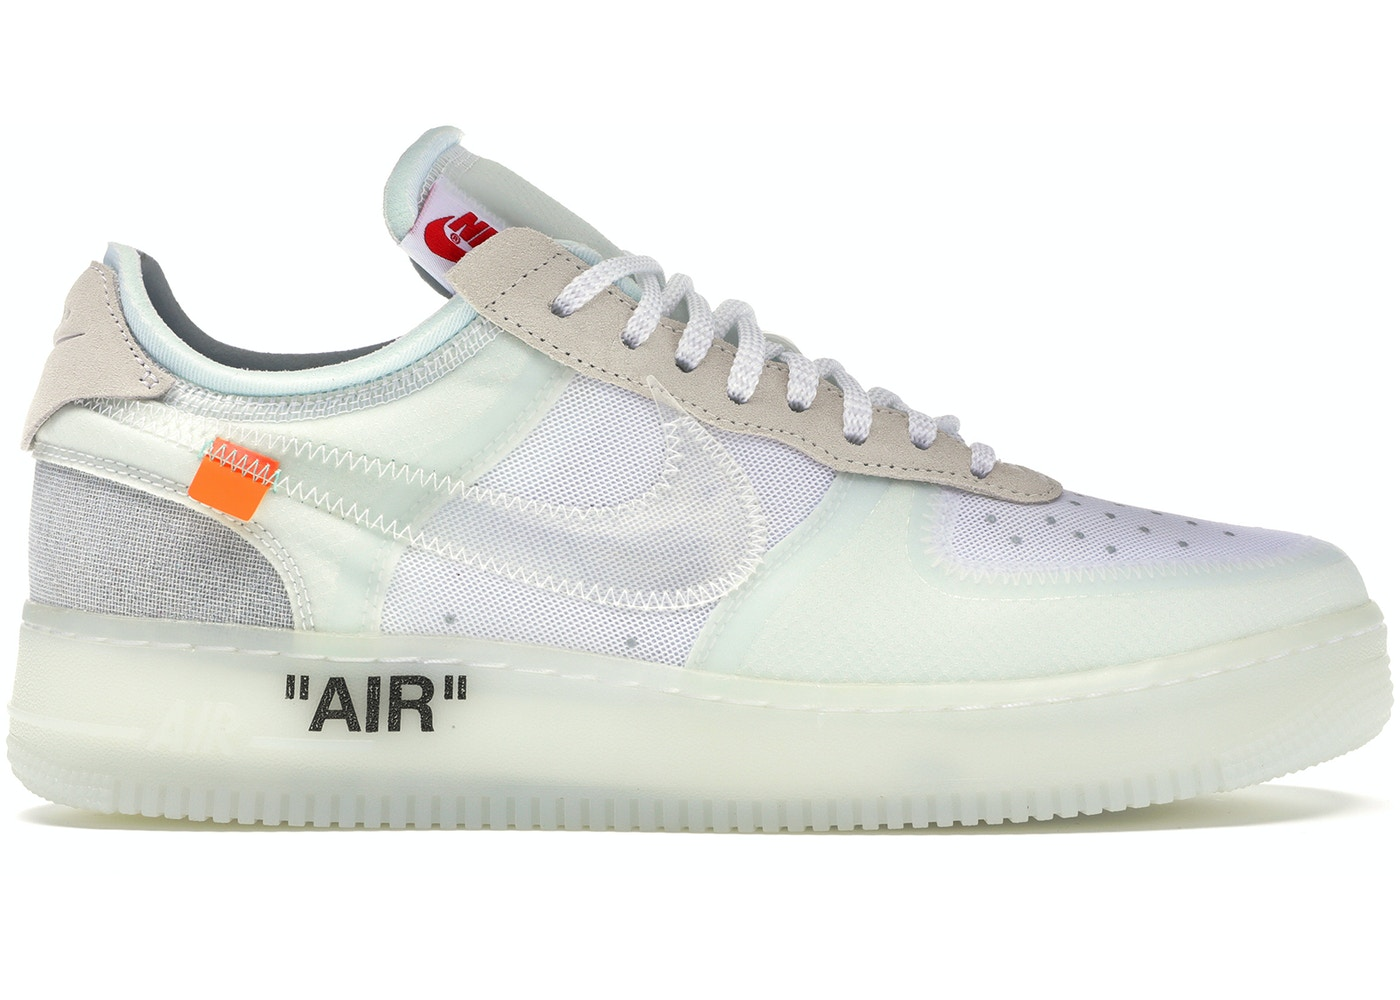 7c94afe2931b7 Air Force 1 Low Off-White - AO4606-100